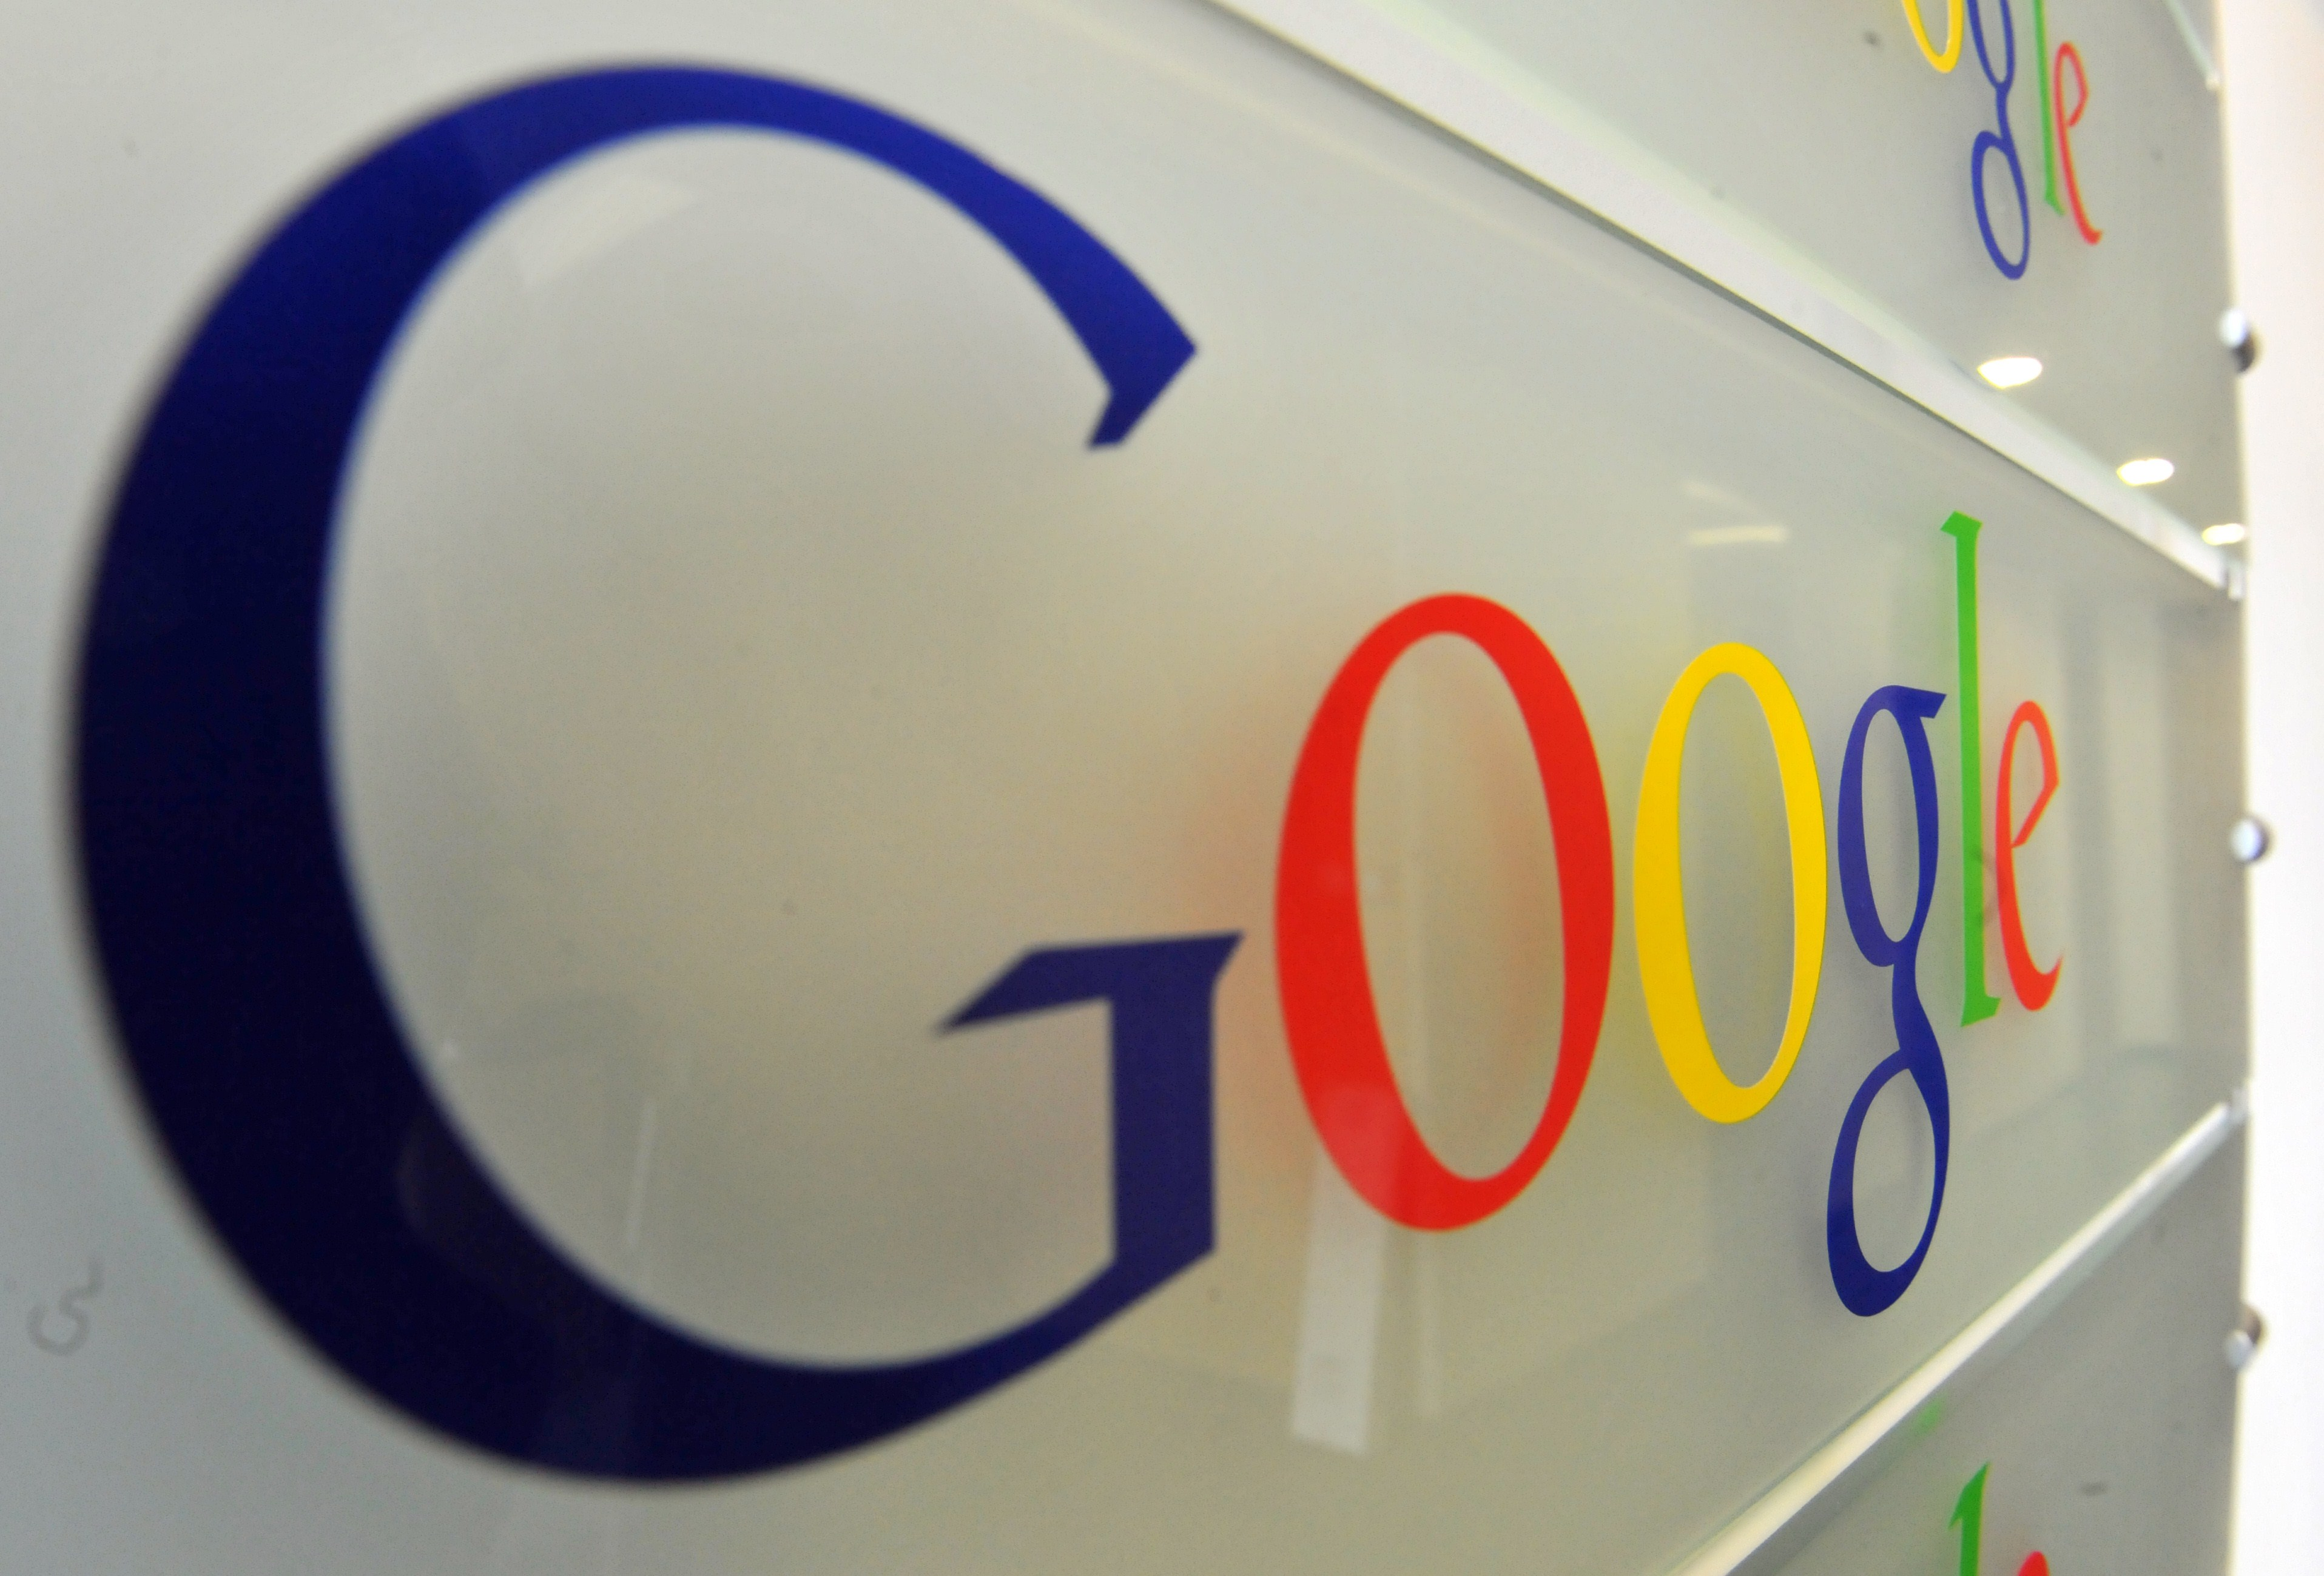 Google logo is seen on a wall at the entrance of the Google offices in Brussels on February 5, 2014.